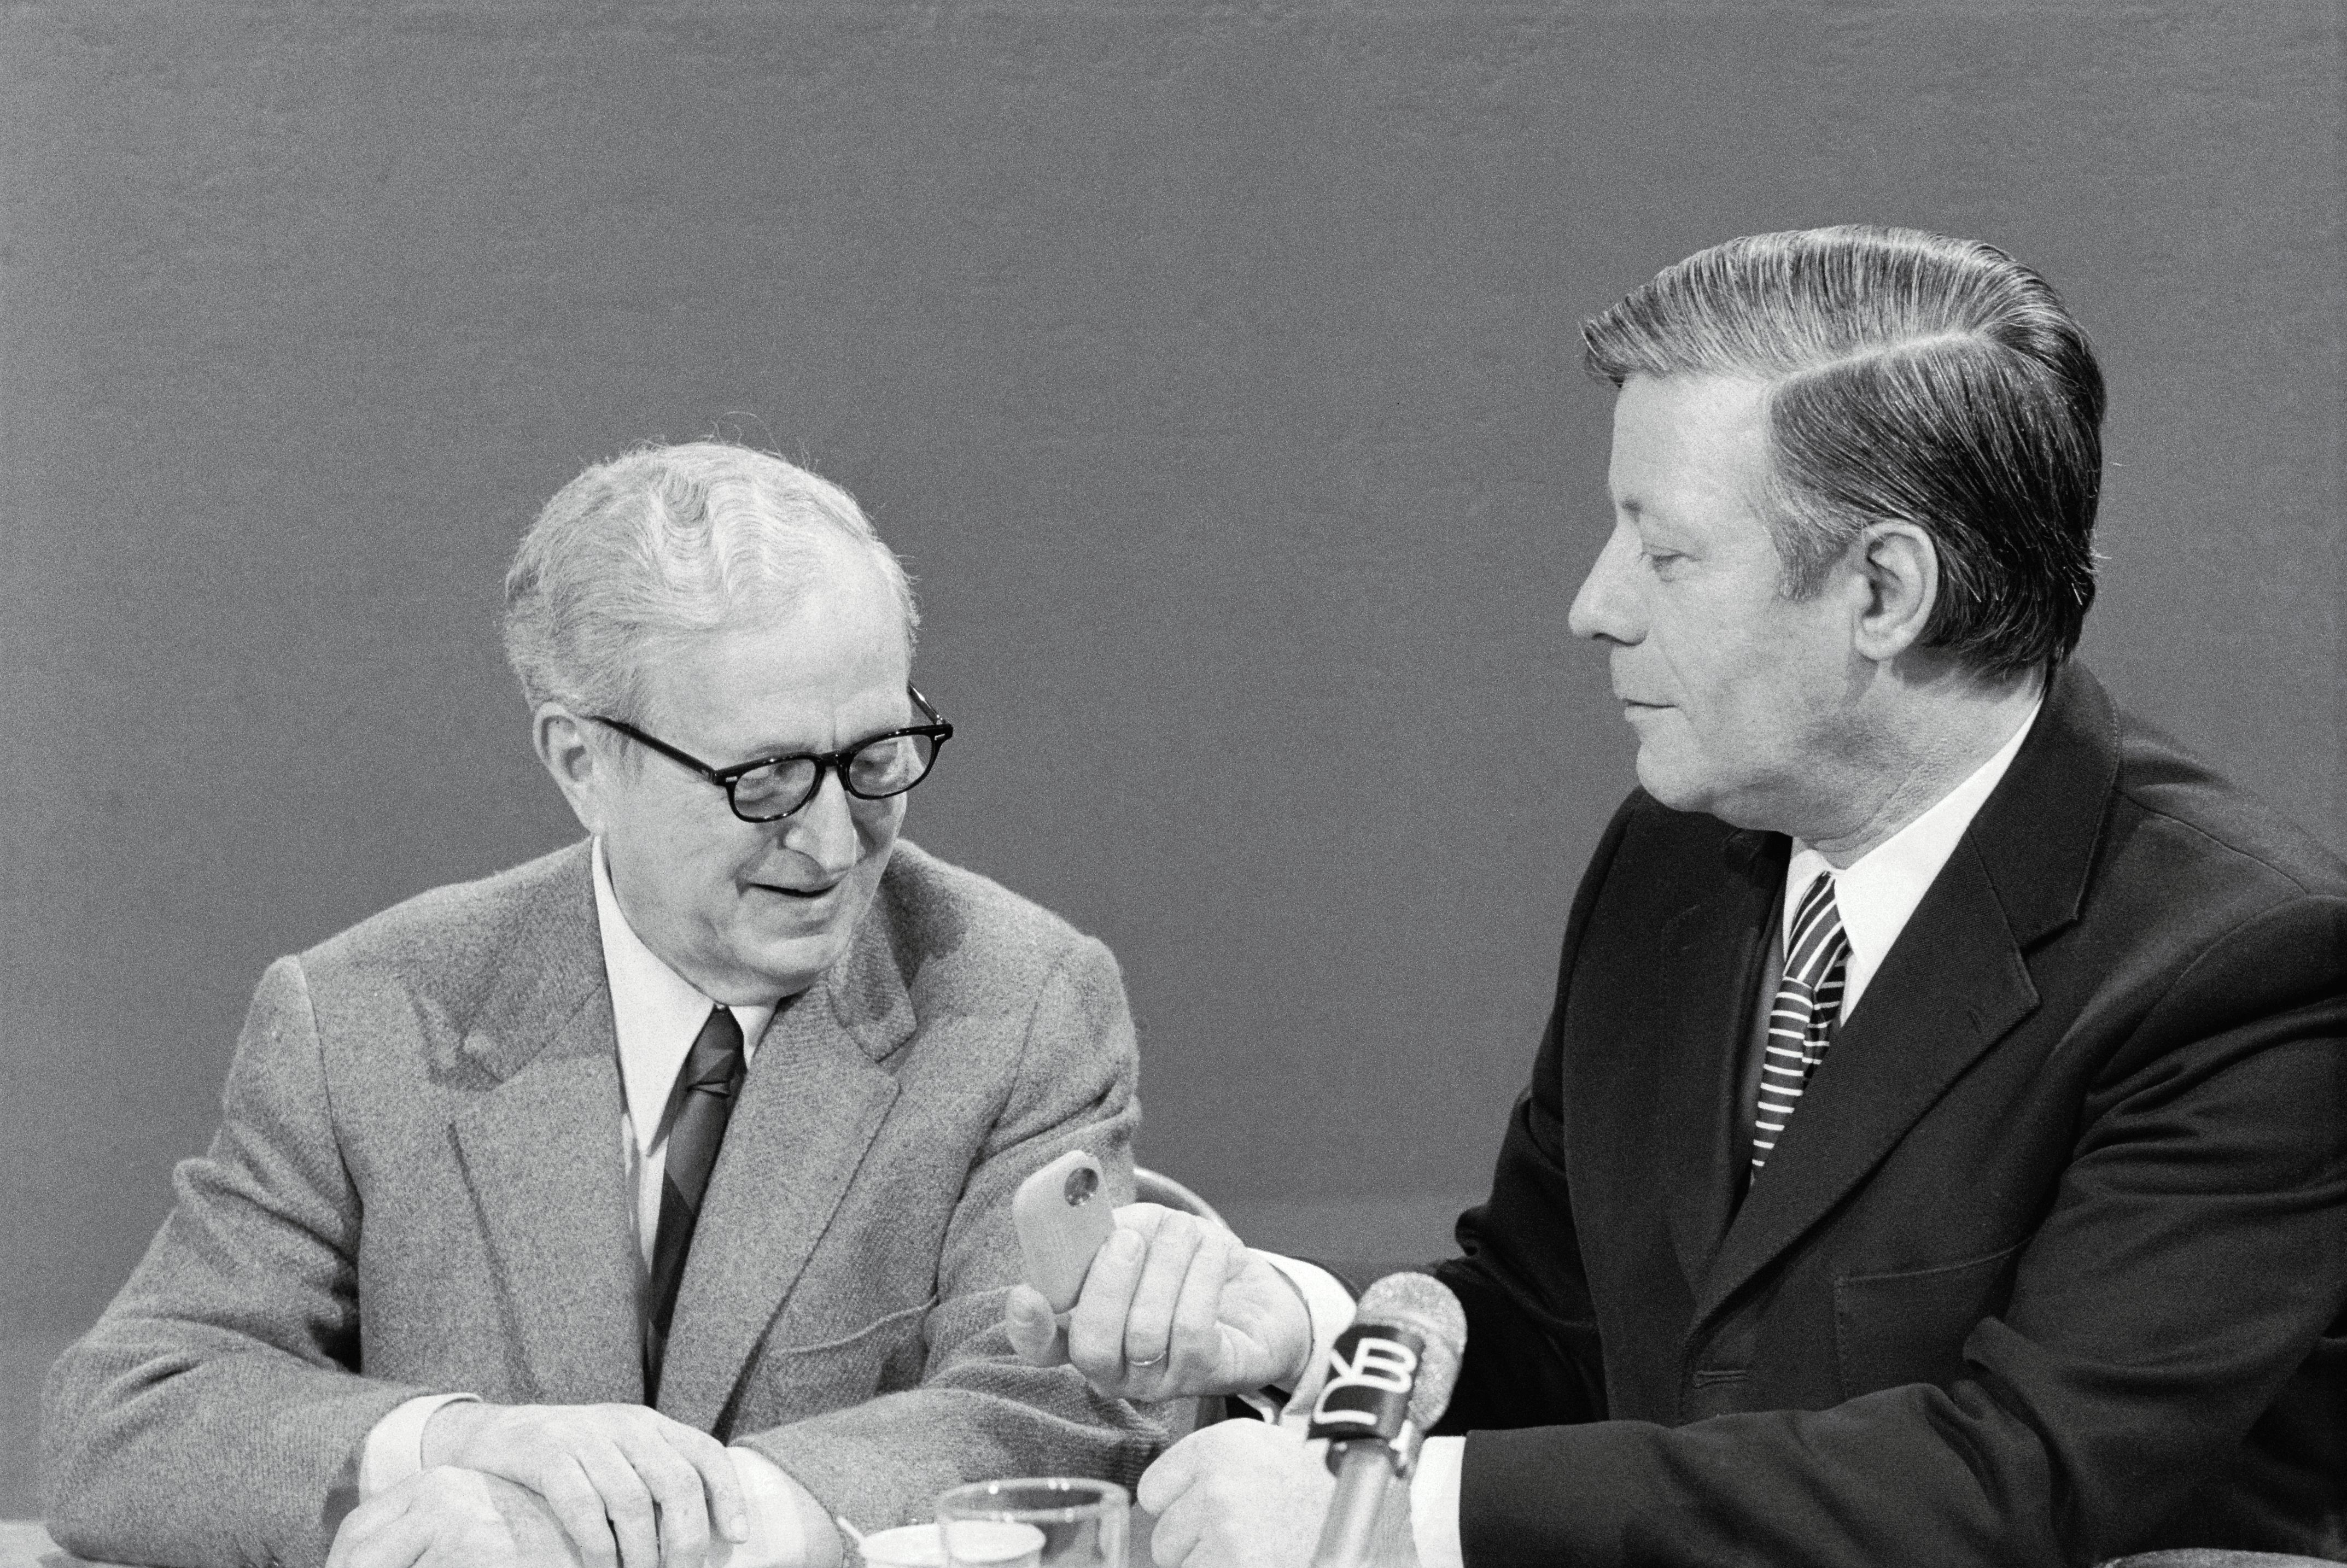 West German Chancellor Helmut Schmidt inviting Lawrence Spivak, left, to try sniffing snuff.